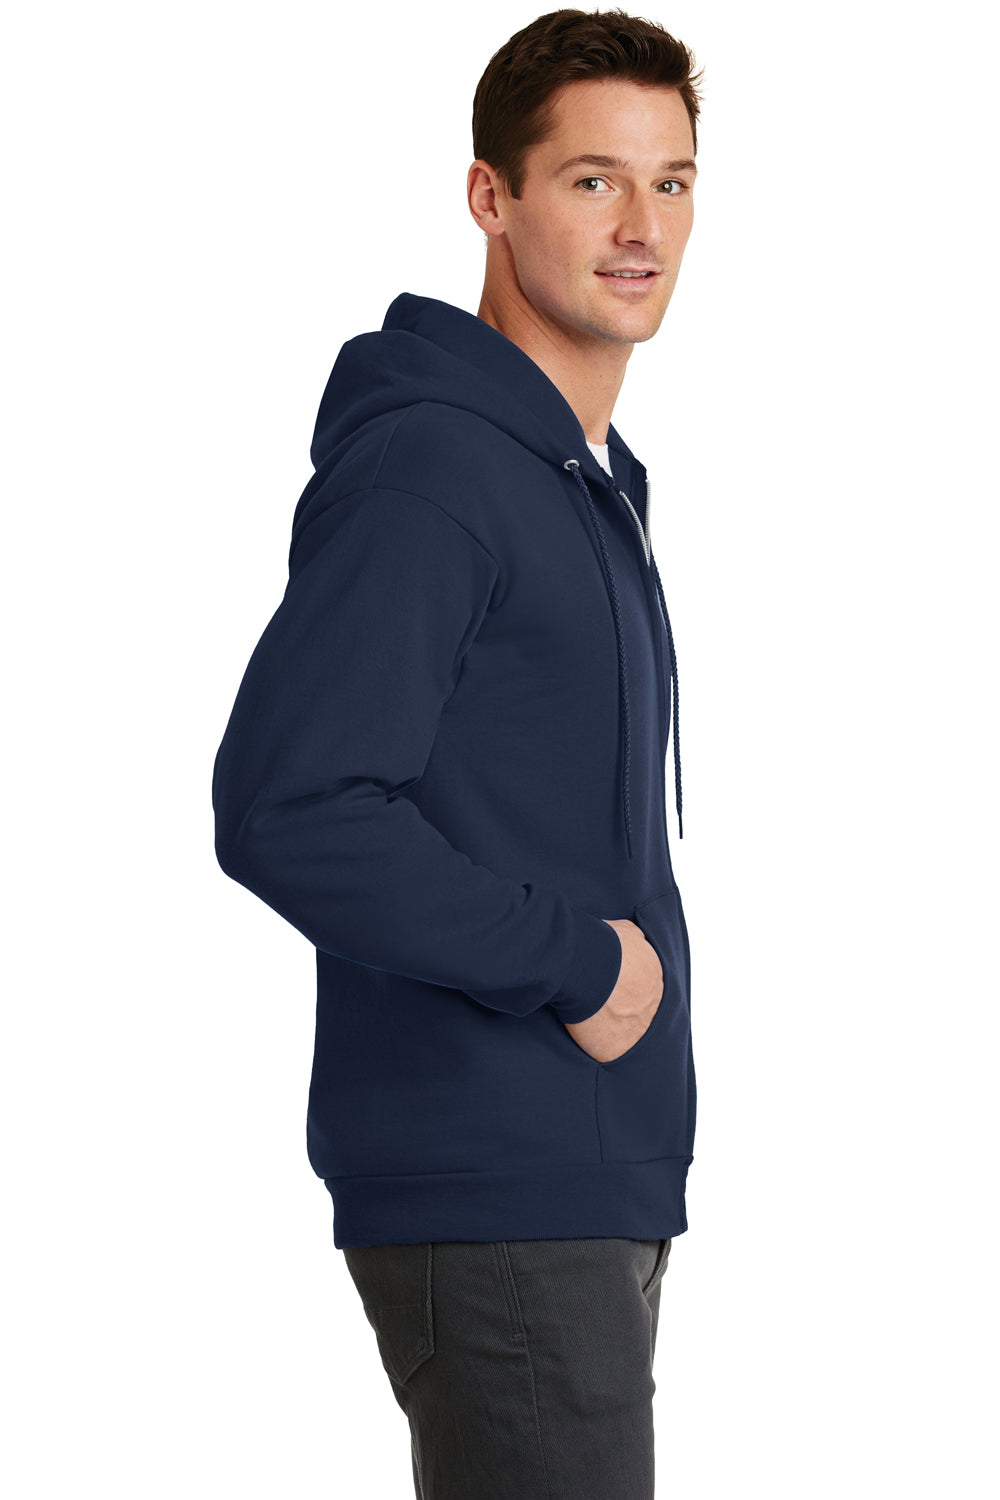 Port & Company PC78ZH Mens Core Fleece Full Zip Hooded Sweatshirt Hoodie Navy Blue Side